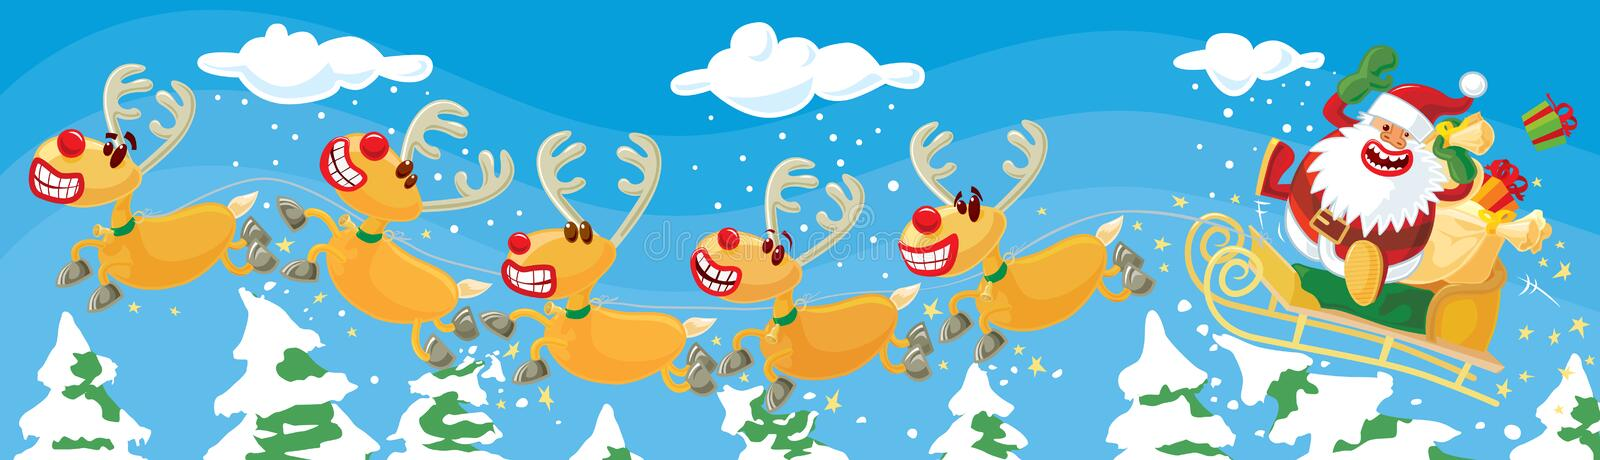 Santa and reindeers in a hurry. Funny Christmas illustration. Santa and Rudolph jumping over trees. Vector without gradients, great for printing stock illustration